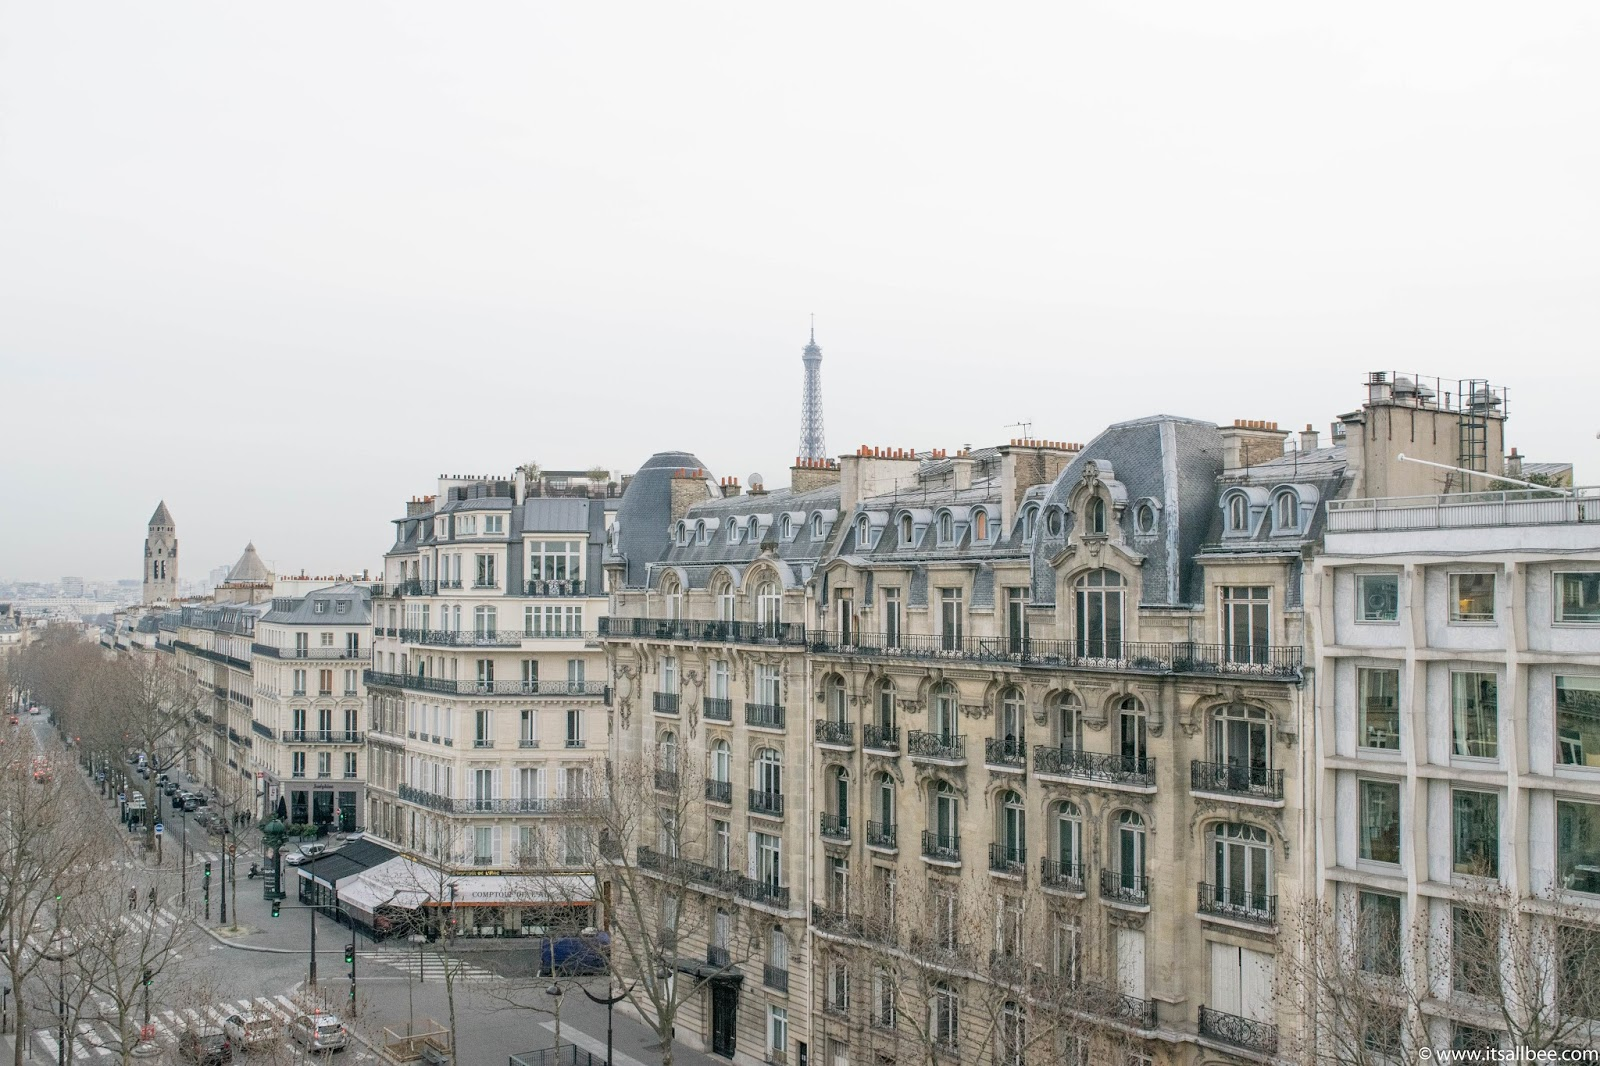 Top Paris Hotels With Balcony Views Of Eiffel Tower | hotels in paris with eiffel tower view and balcony